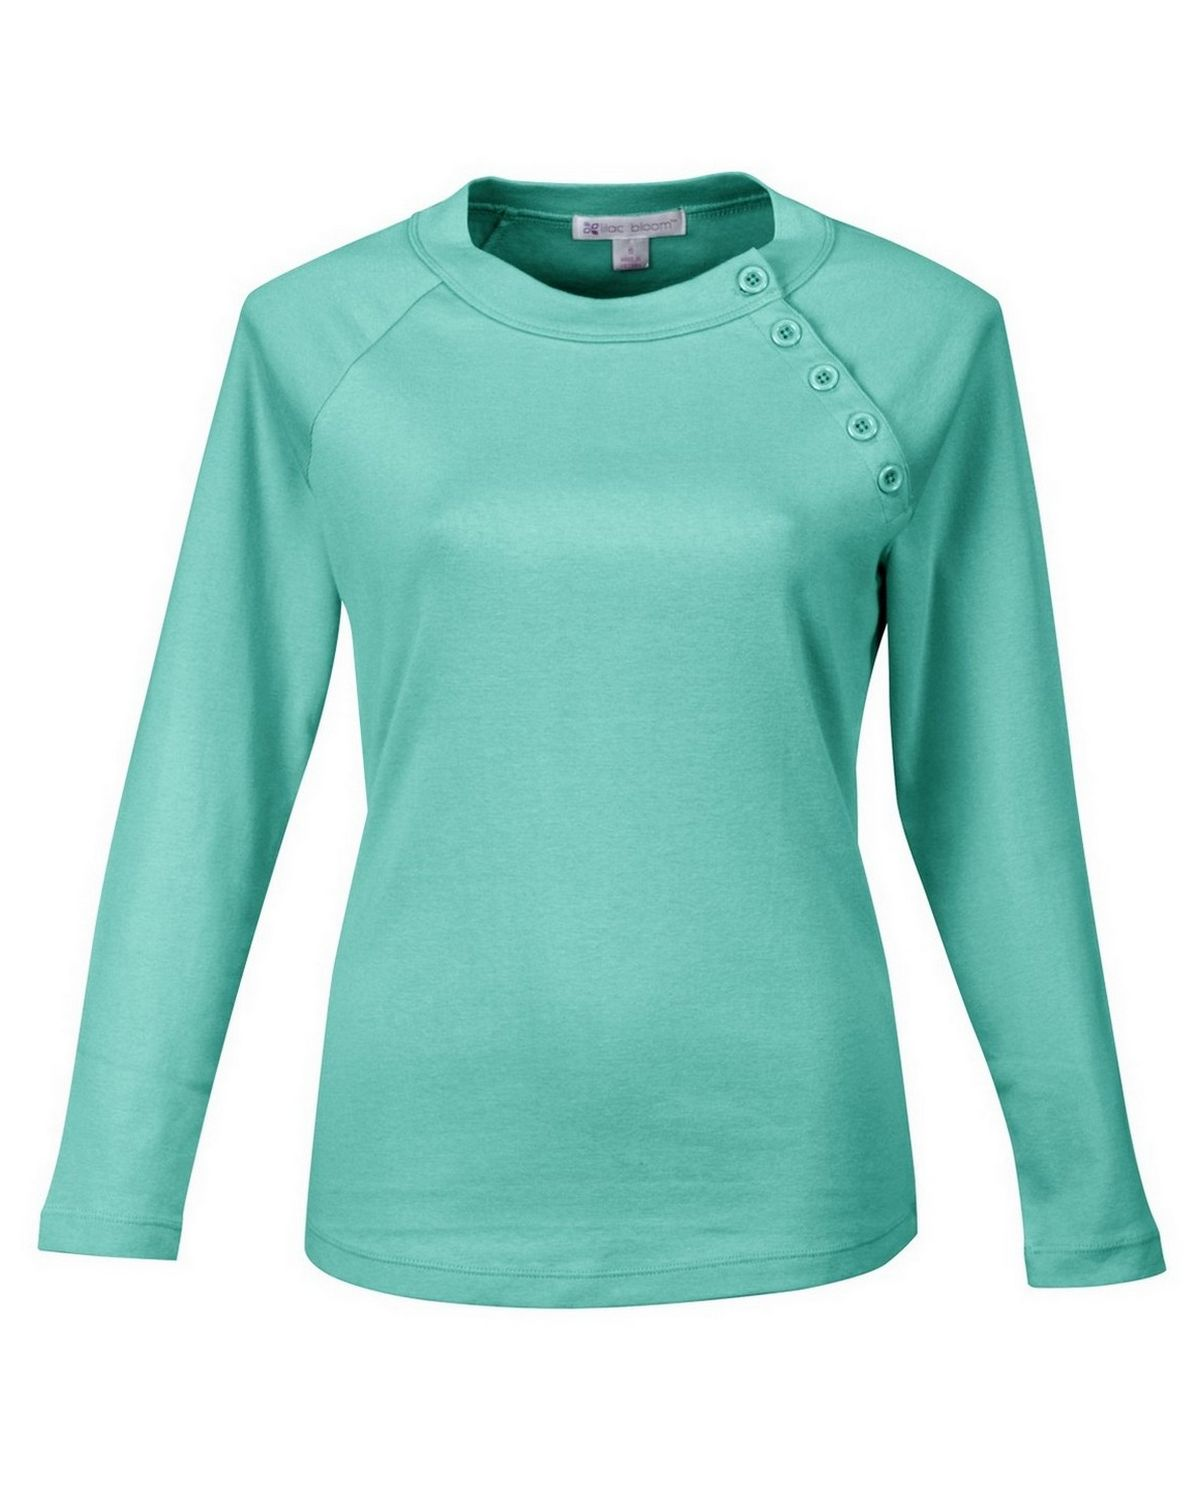 Lilac Bloom LB393 Tiffany - Womens Long Sleeve Knit - Bright Lilac - XS LB393